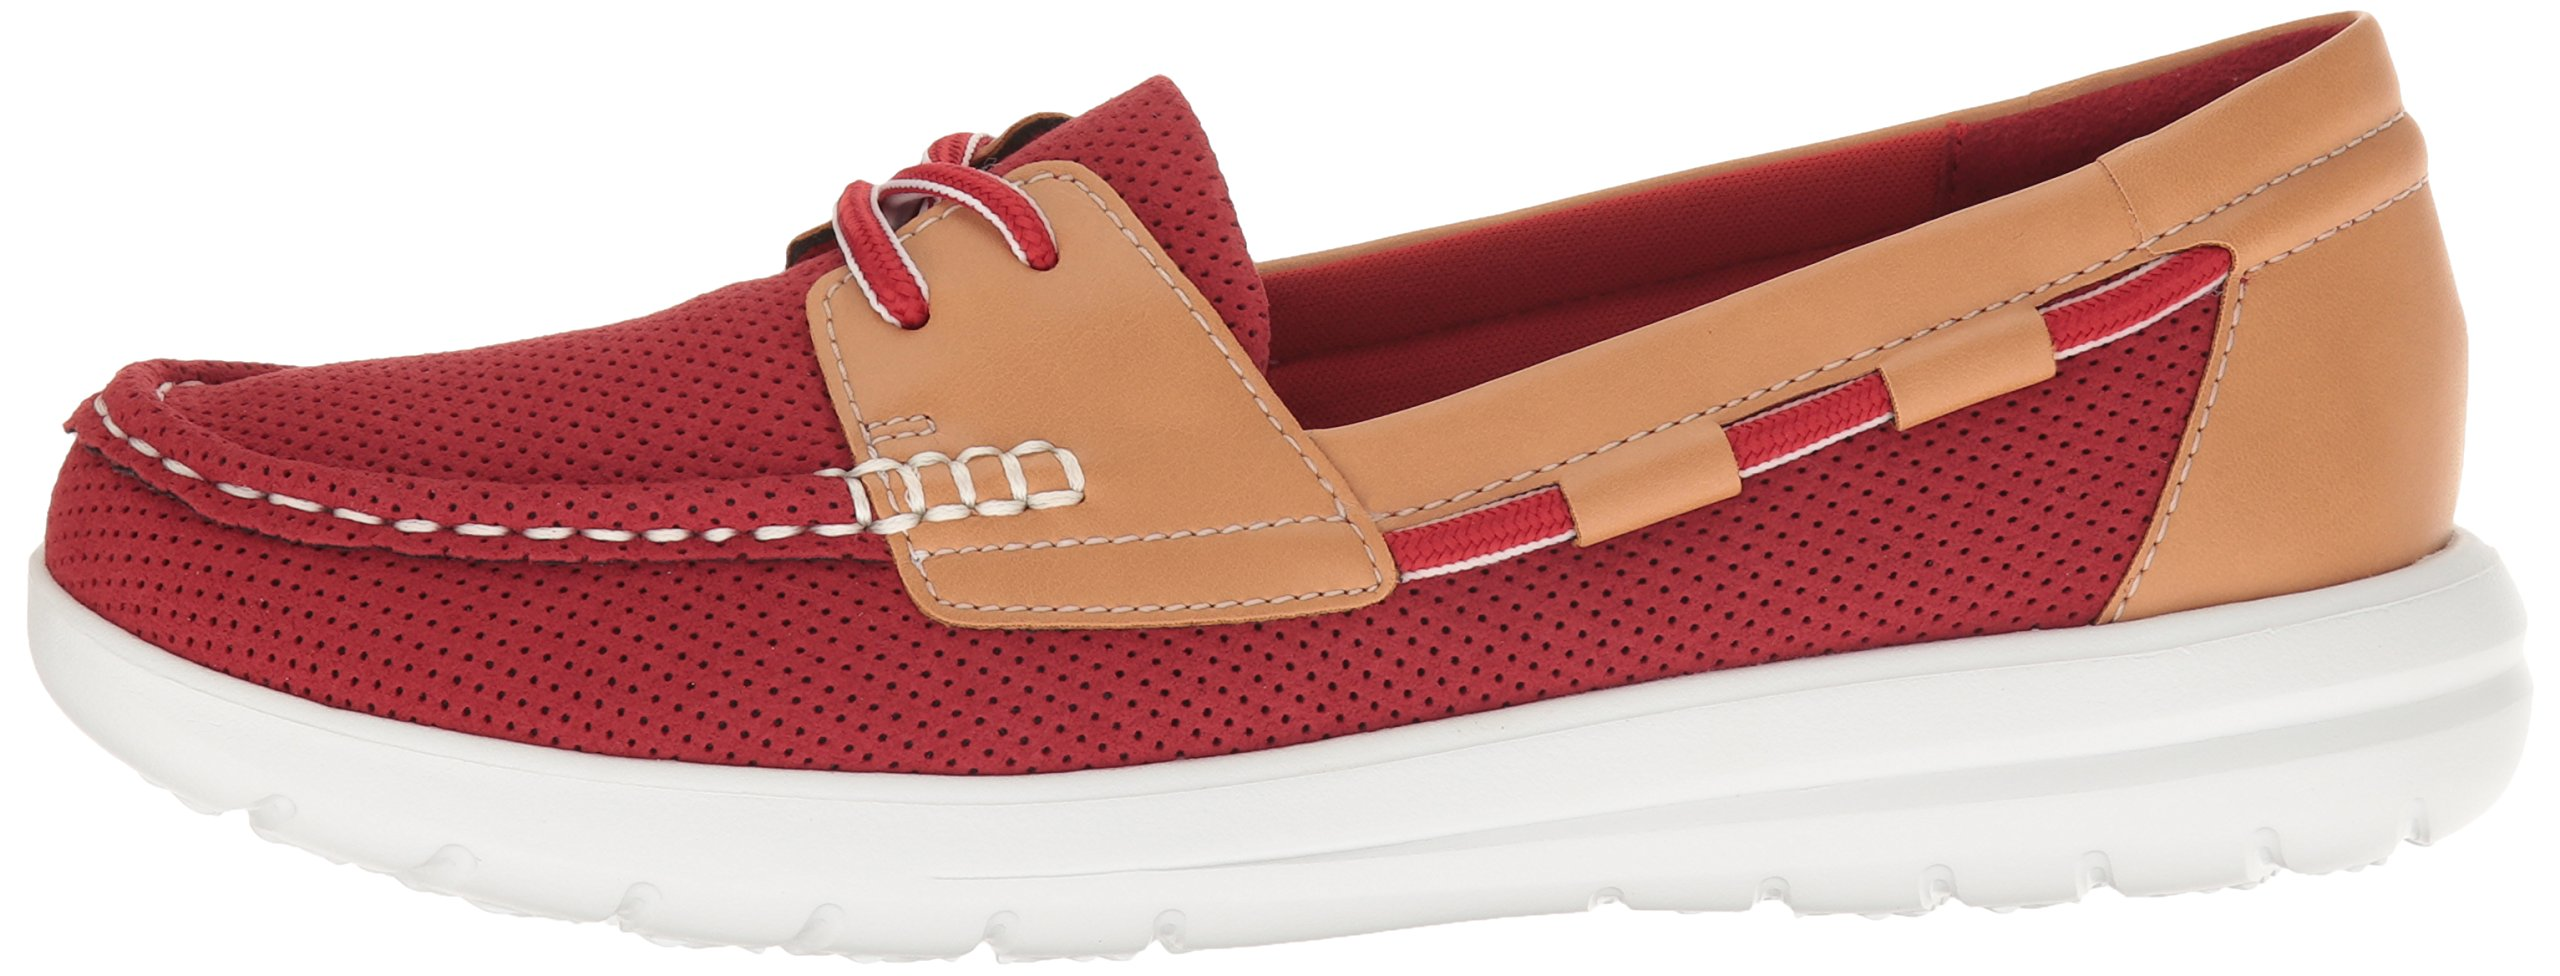 CLARKS Women's Jocolin Vista Boat Shoe, Red Perforated Microfiber, 12 B(M) US by CLARKS (Image #5)